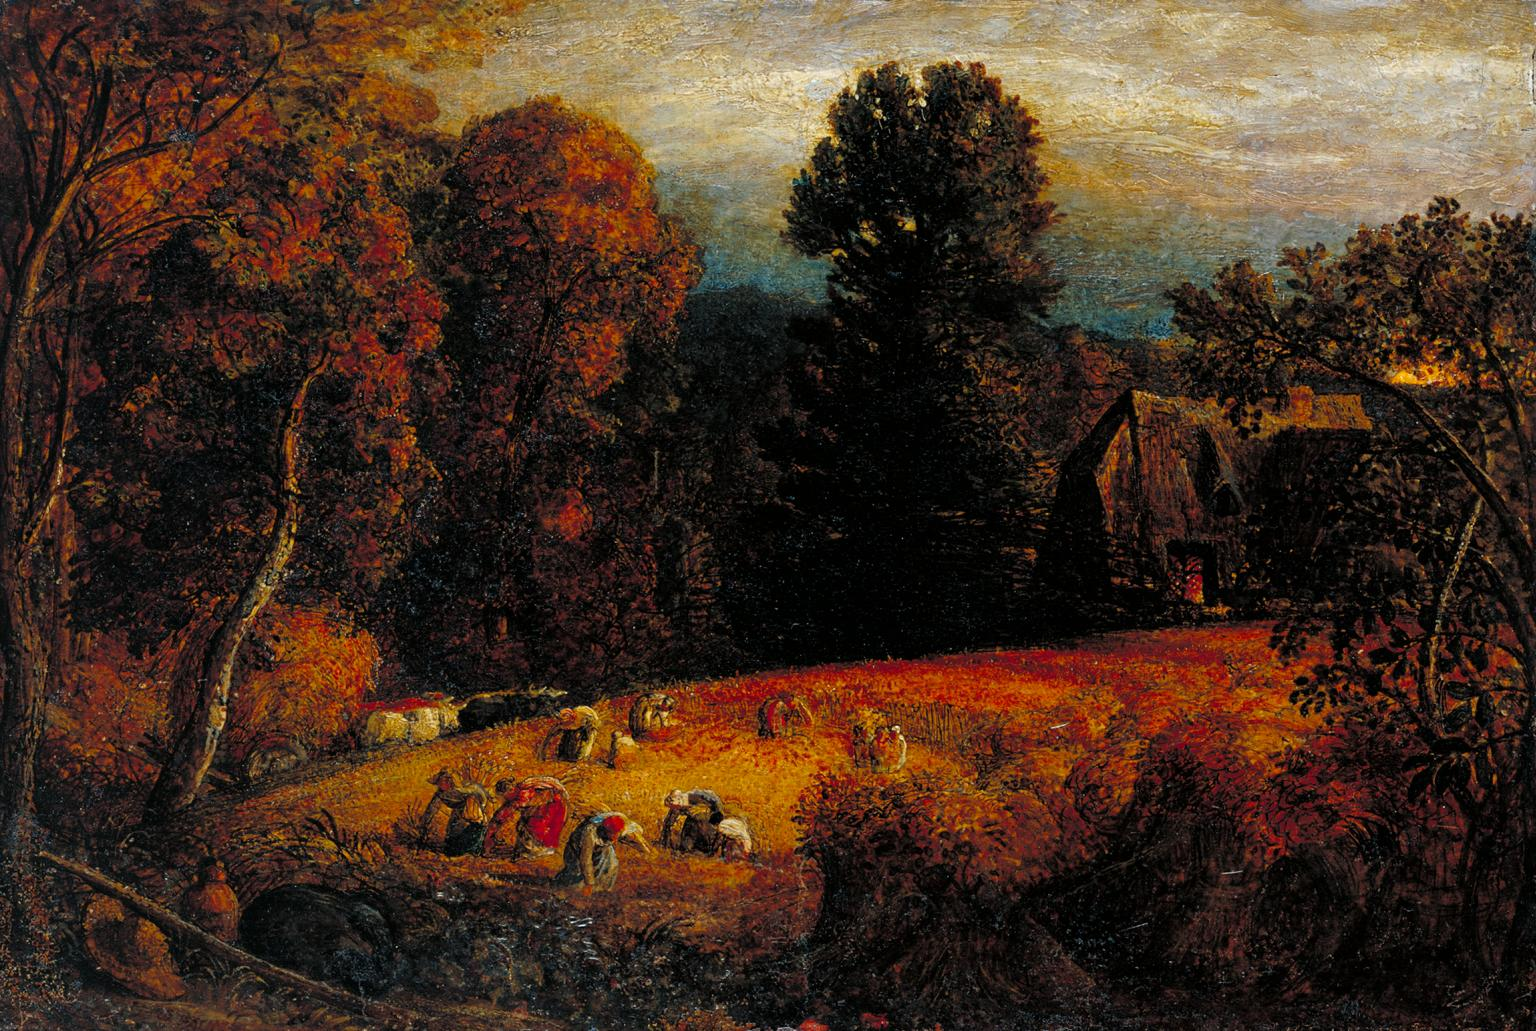 Old colourful painting with people picking crops in a field under trees